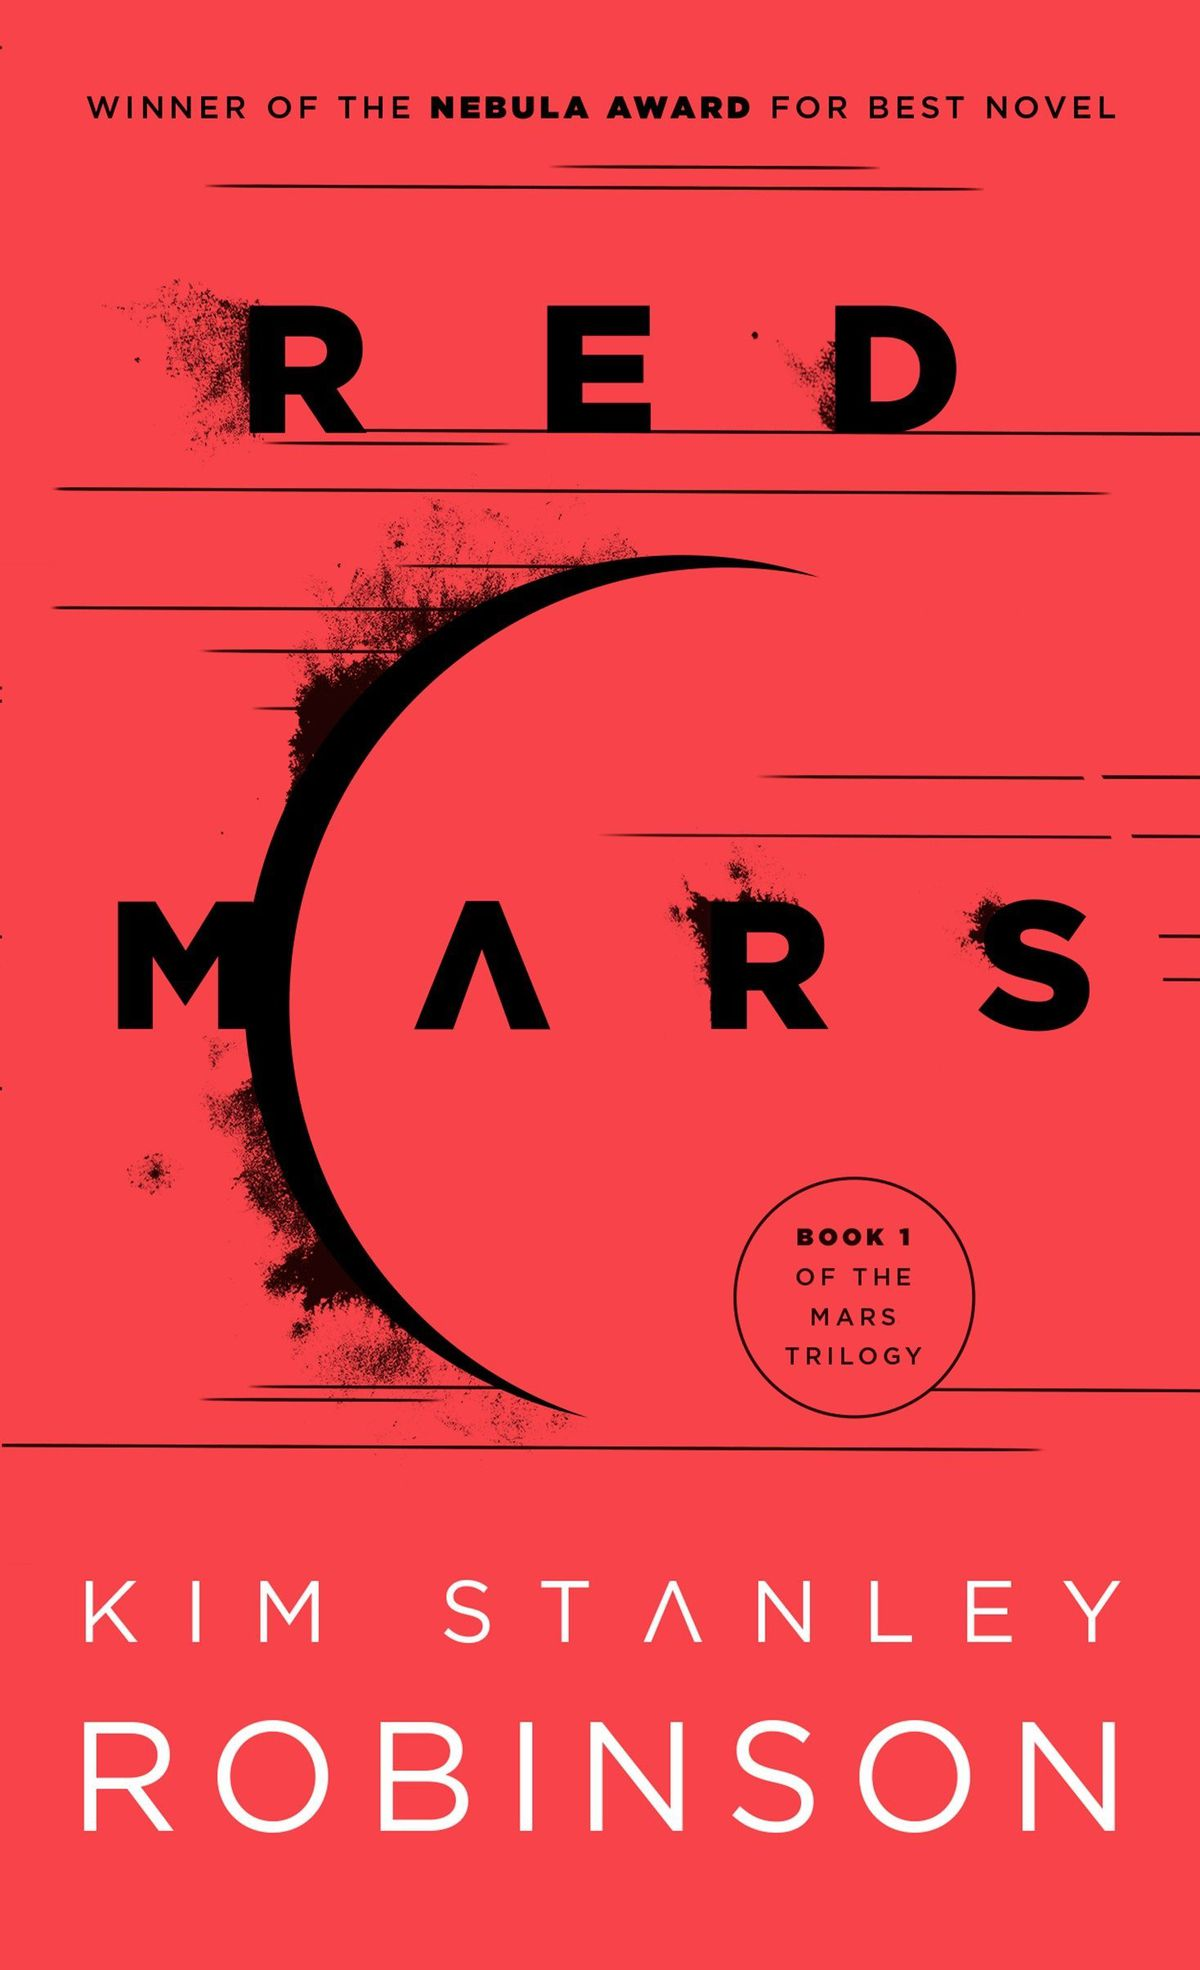 The cover of Kim Stanley Robinson's Red Mars